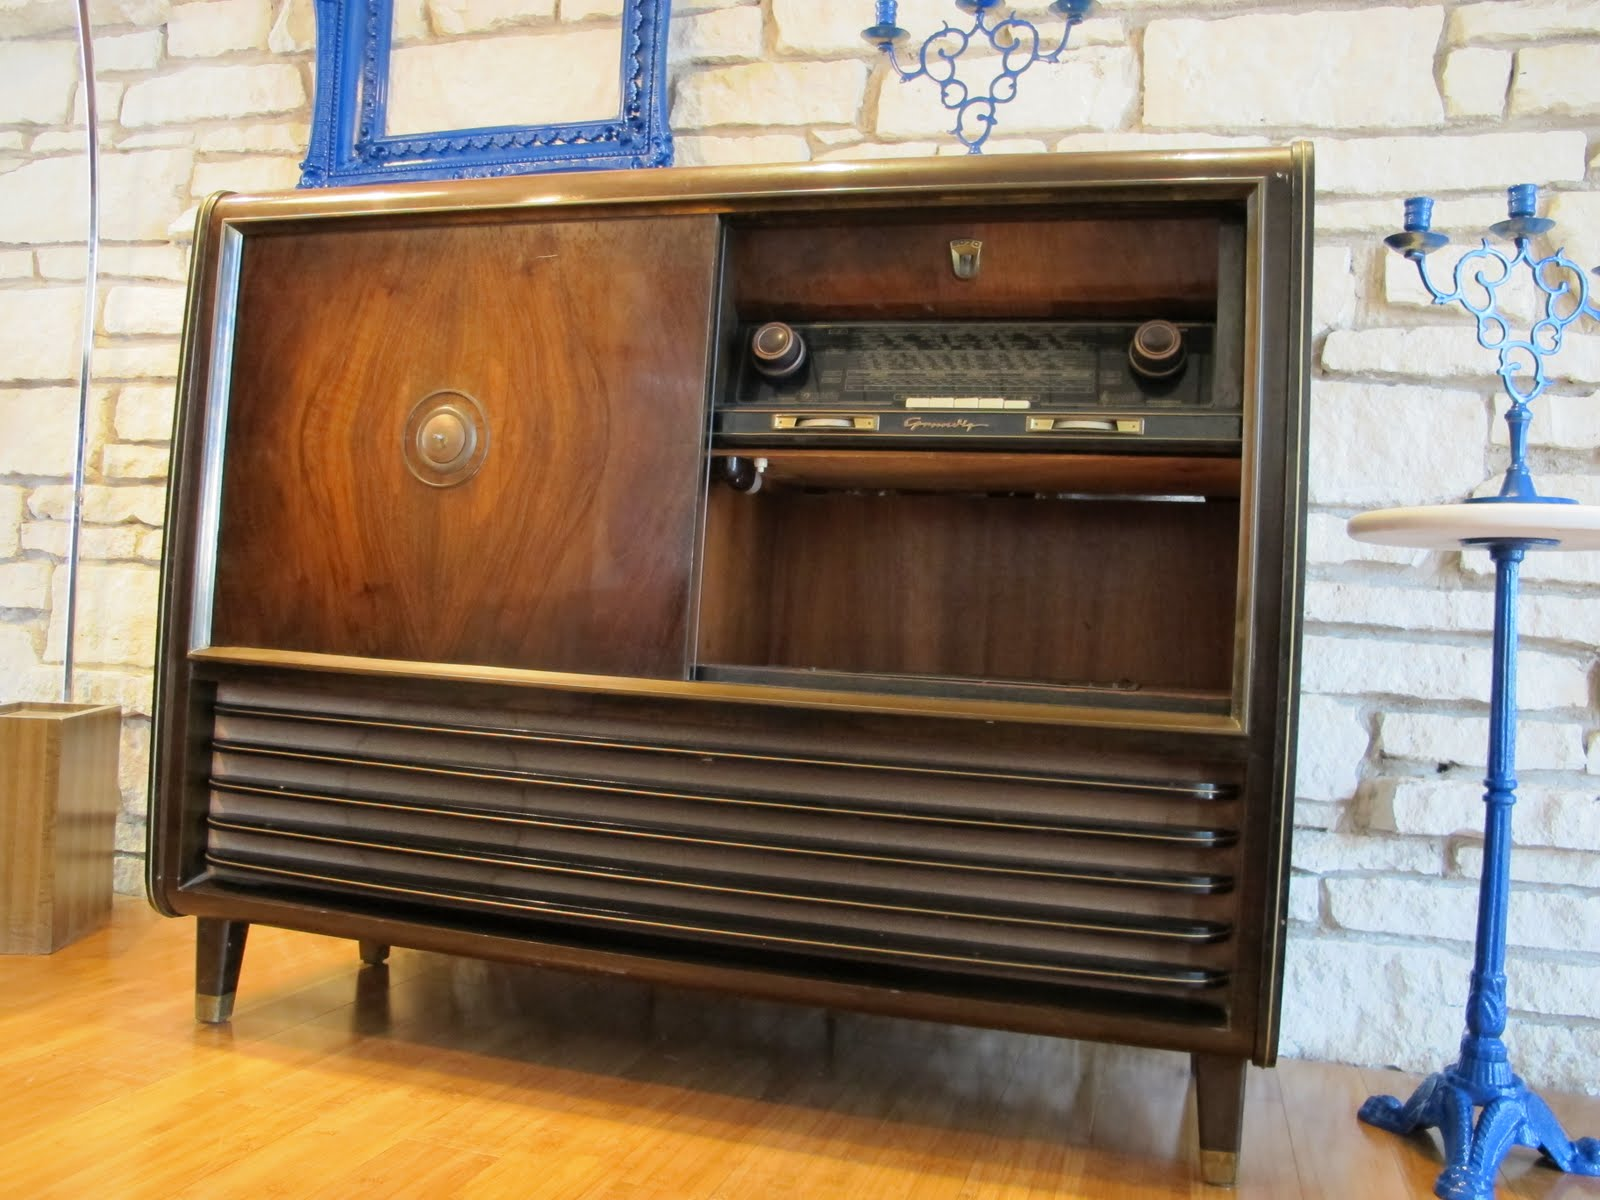 Mad For MidCentury MidCentury Austin Find Retro Stereo And Bar - Mid century modern furniture austin